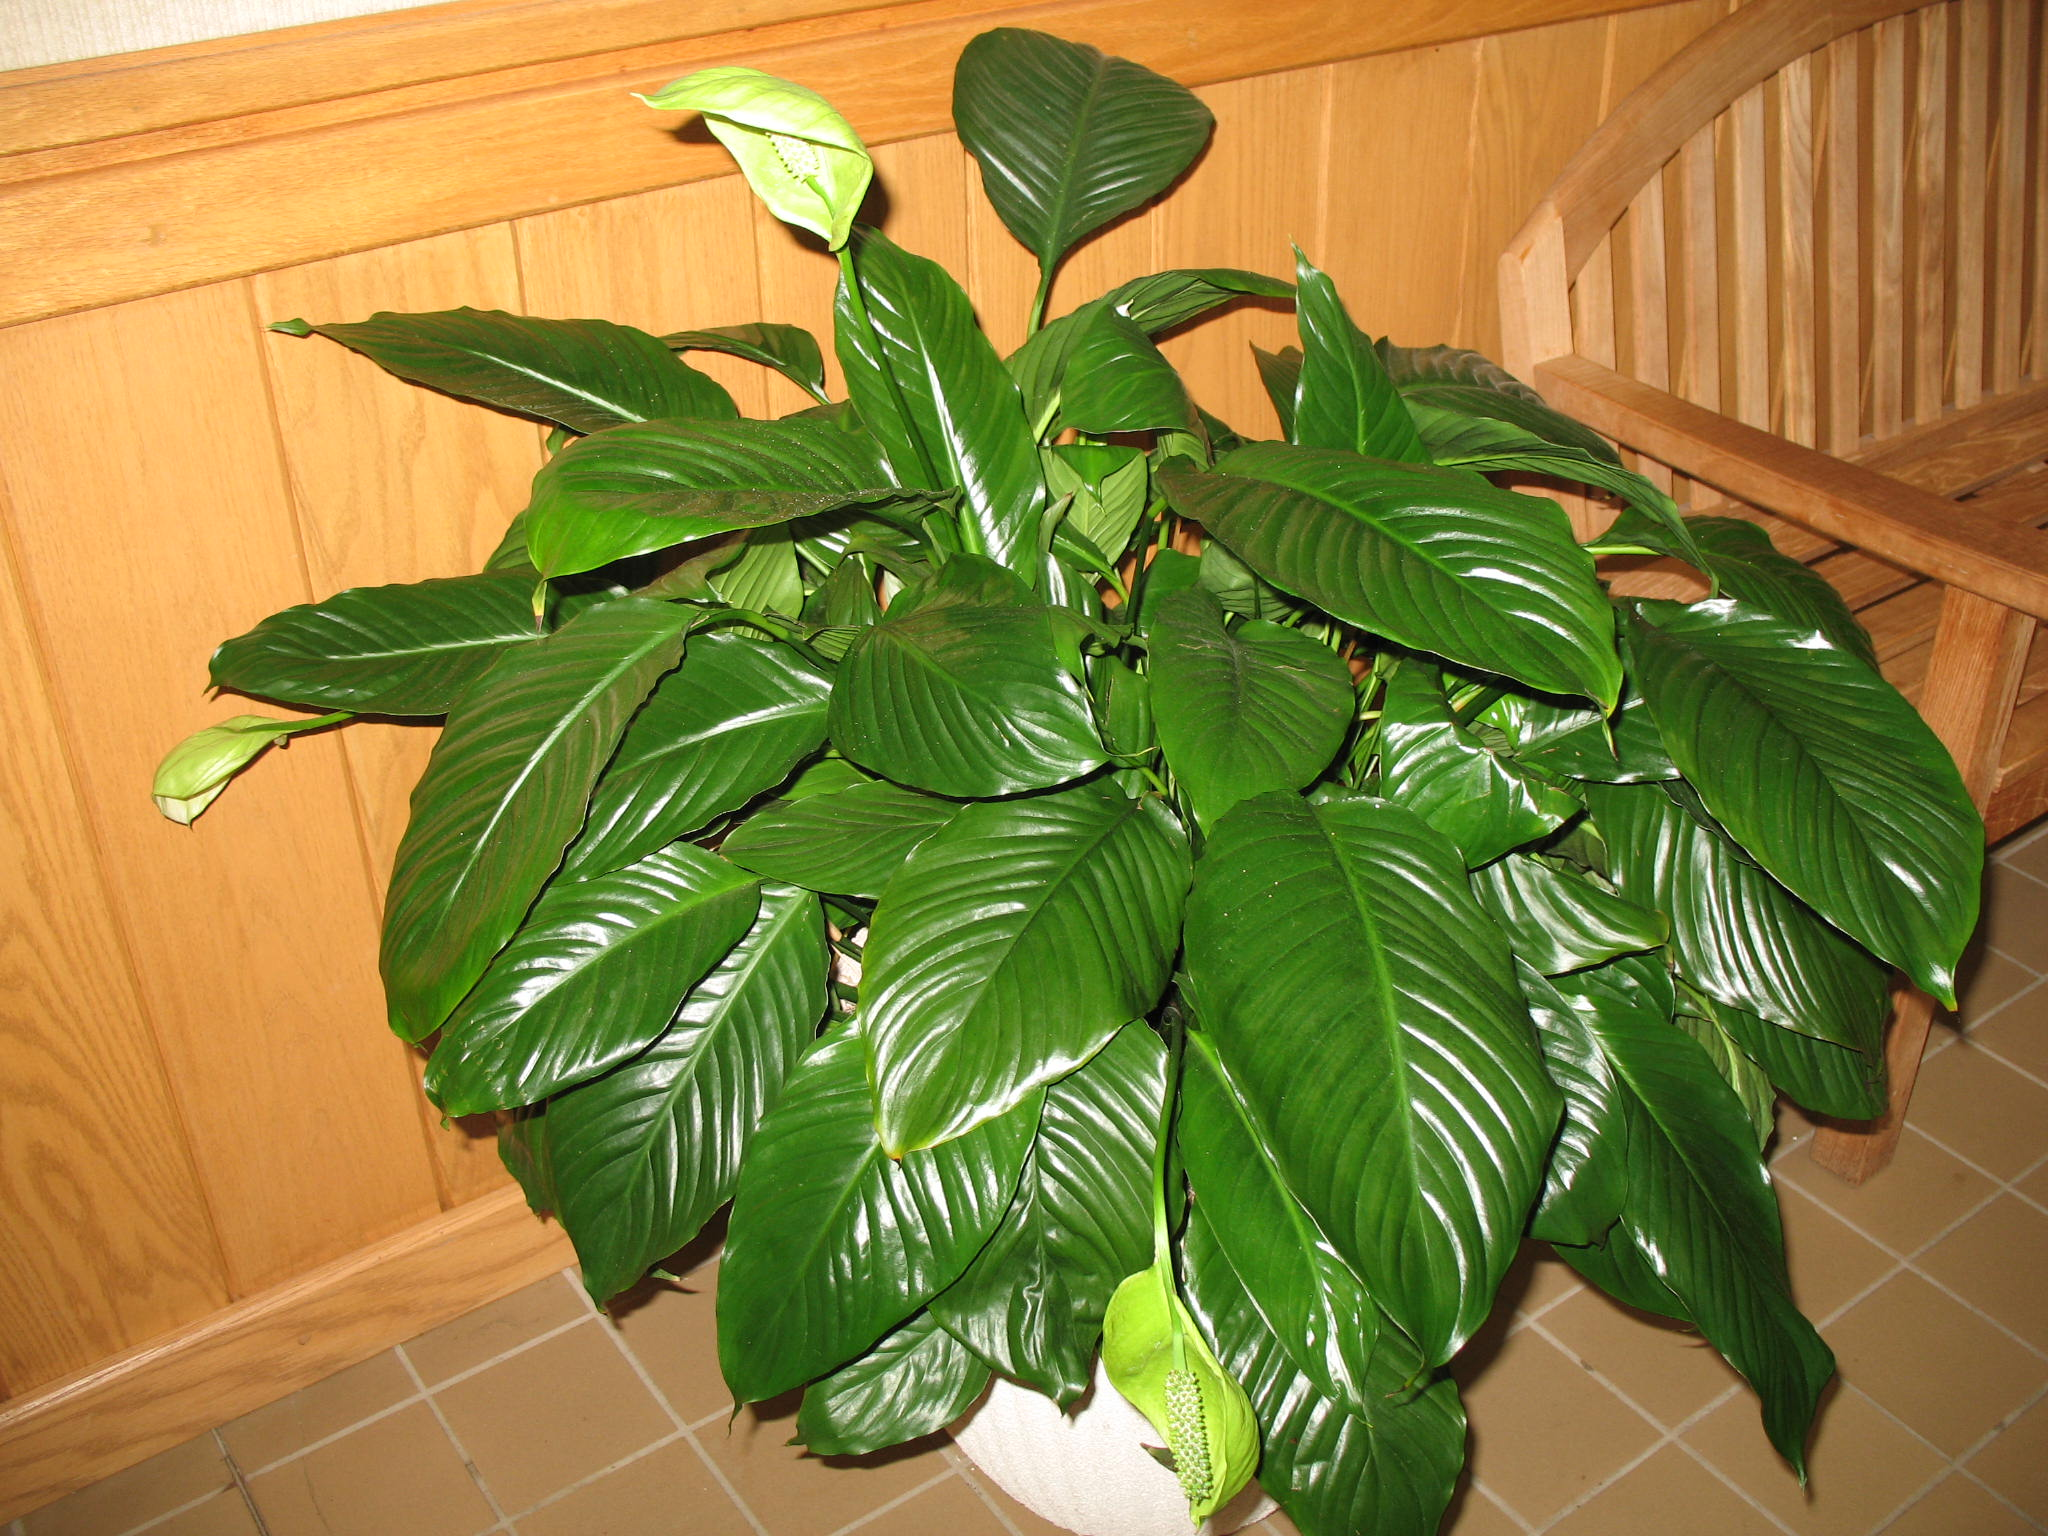 Spathiphyllum species / Spathiphyllum species